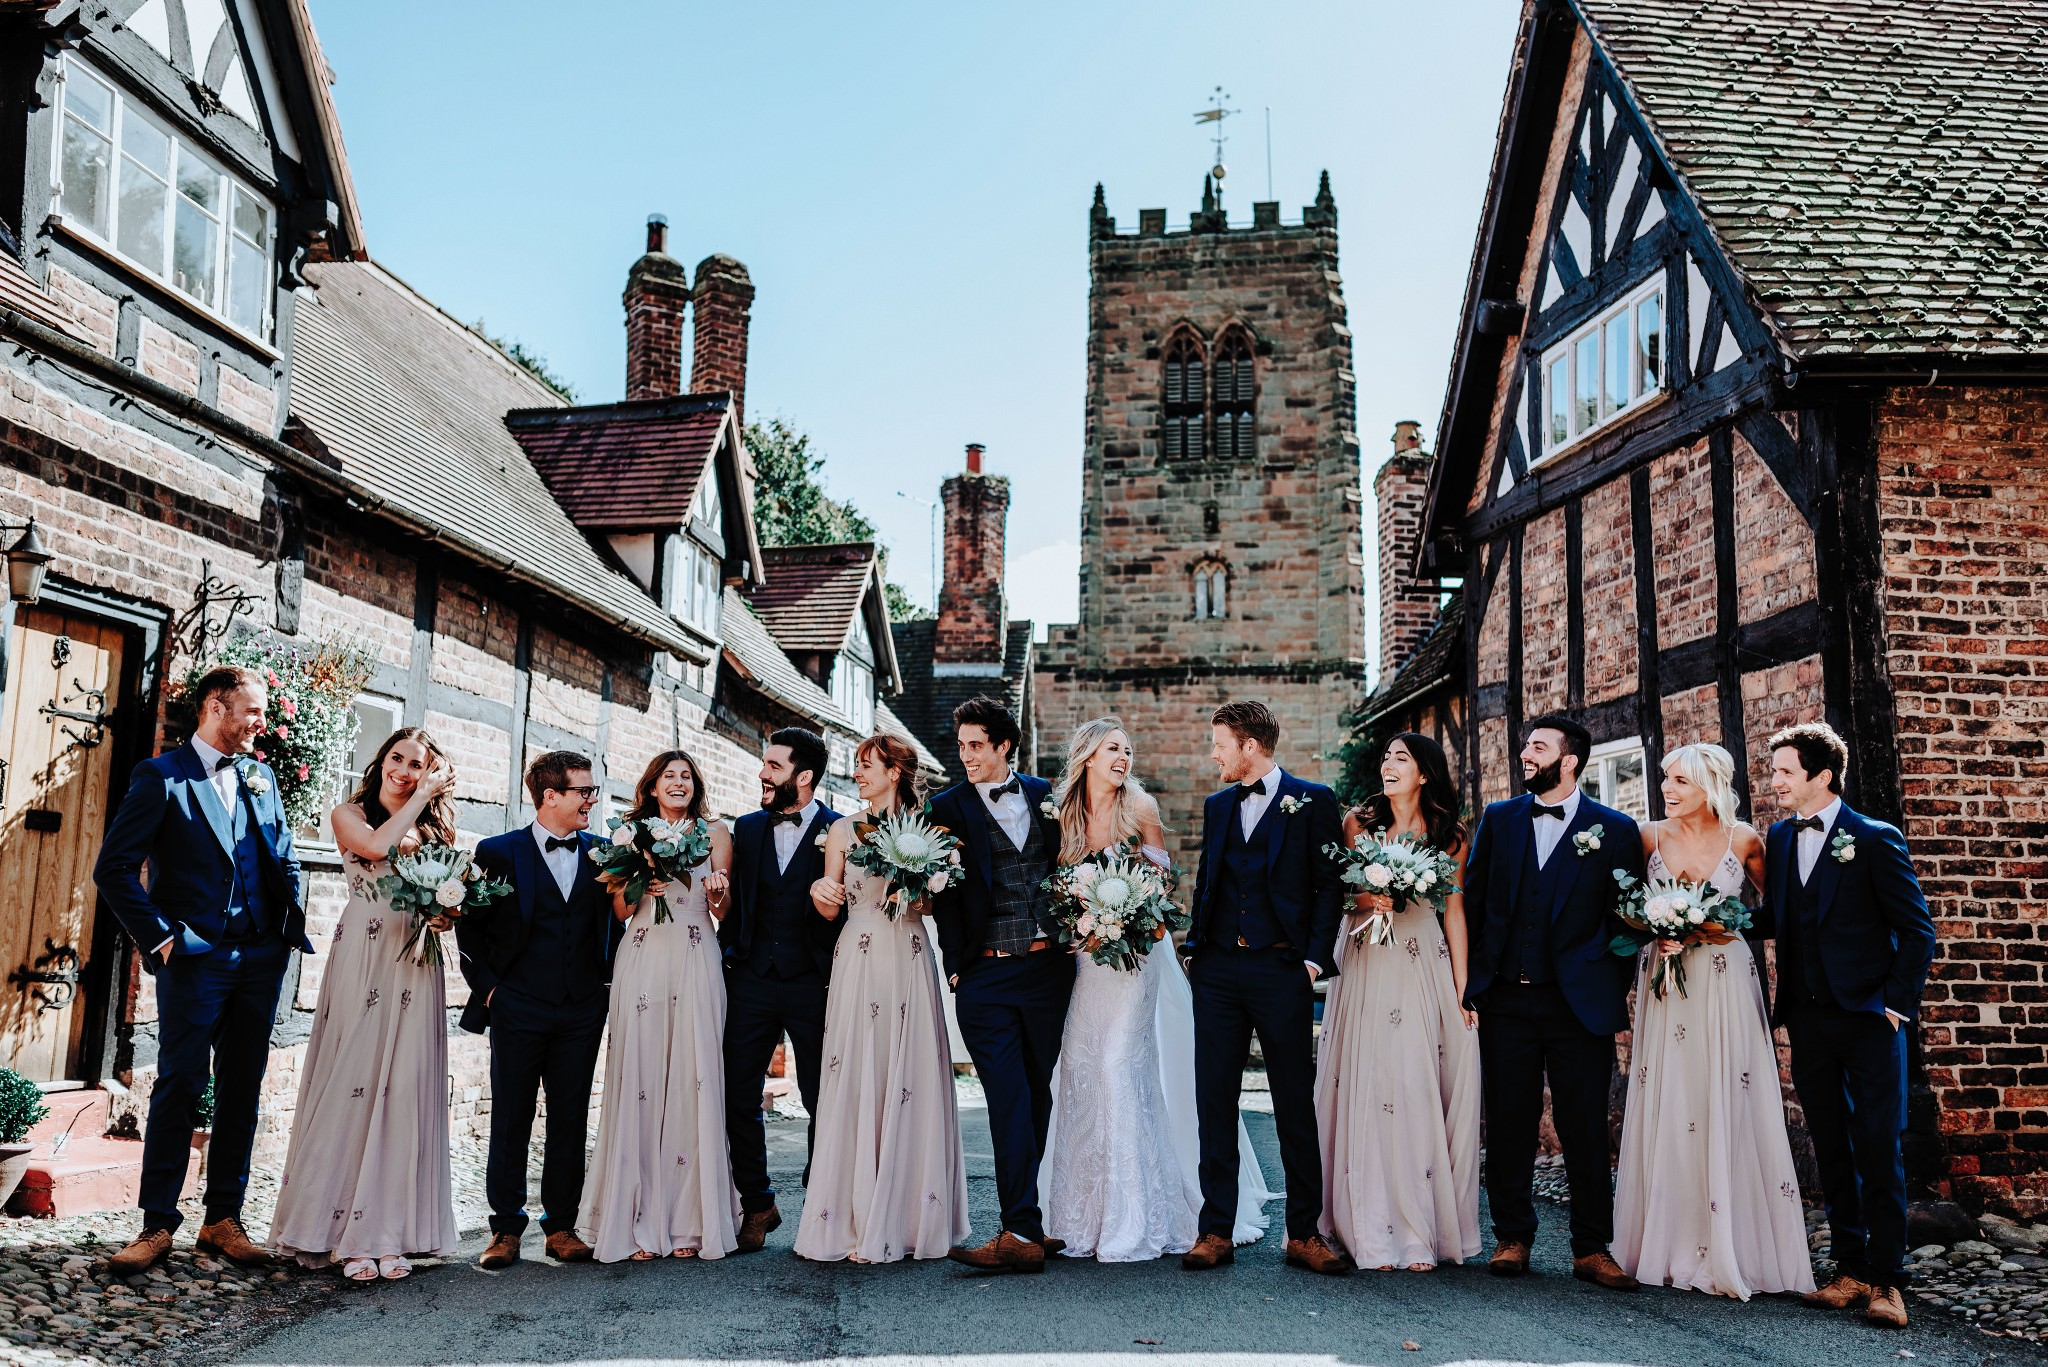 Bridal party at Cheshire Barn Wedding